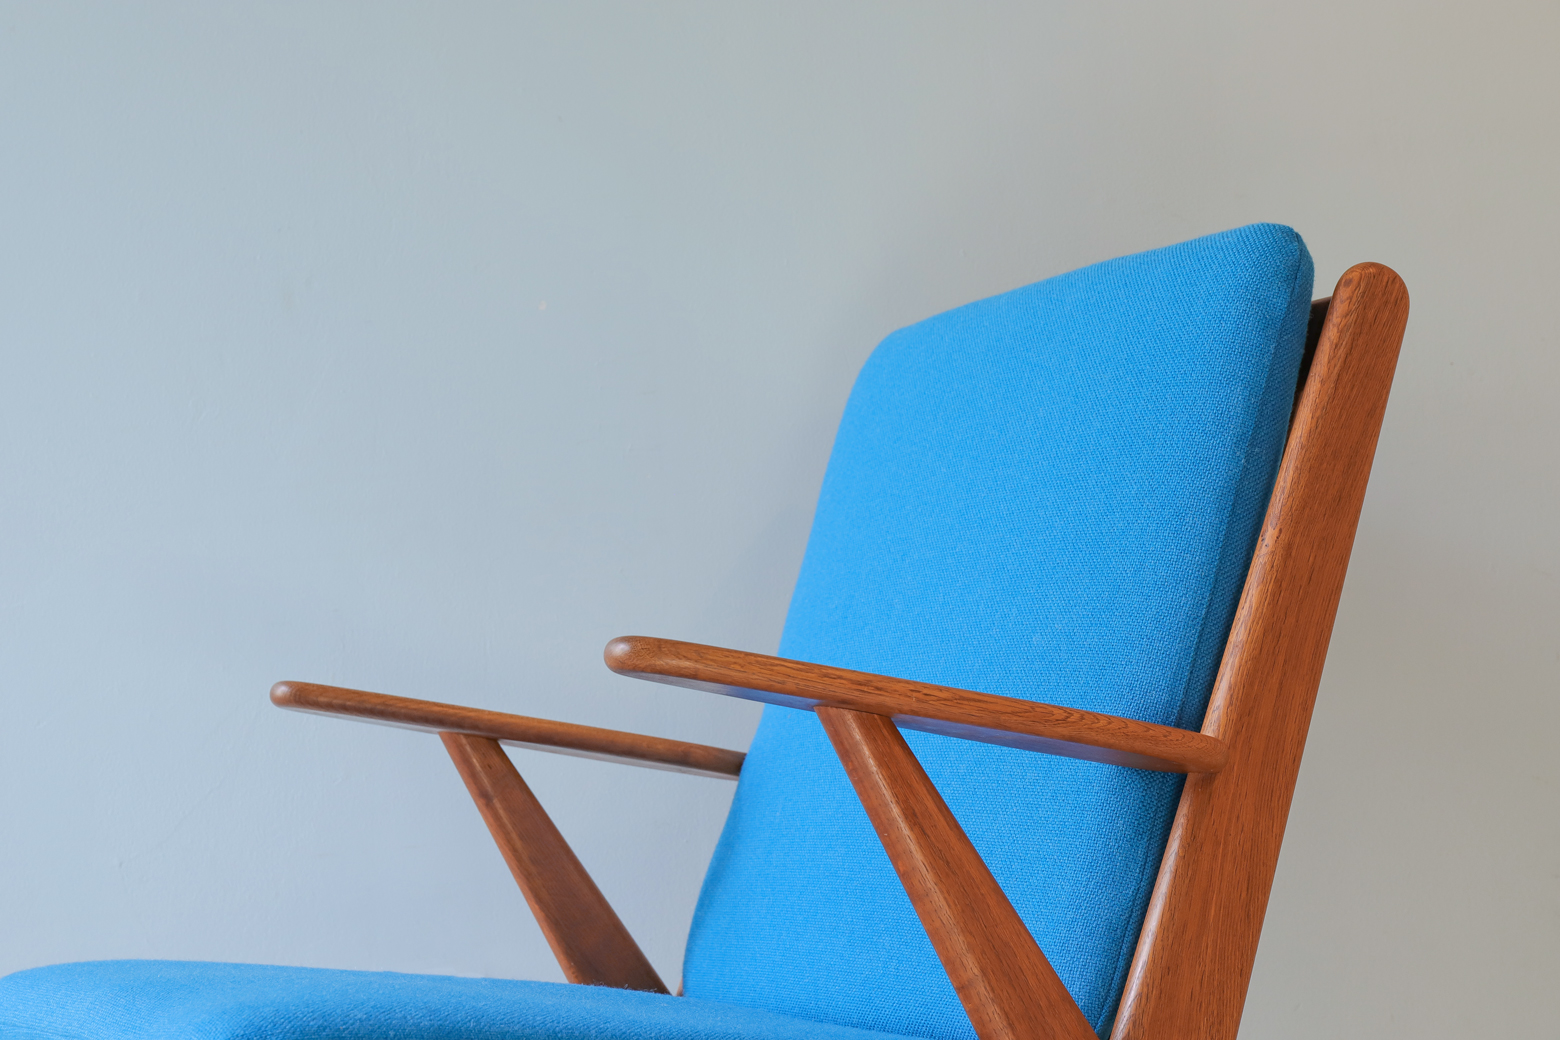 Poul M. Volther J53 Easy Chair FDB Møbler / イージーチェア ソファ ポール・M・ヴォルタ デンマーク ヴィンテージ 北欧家具